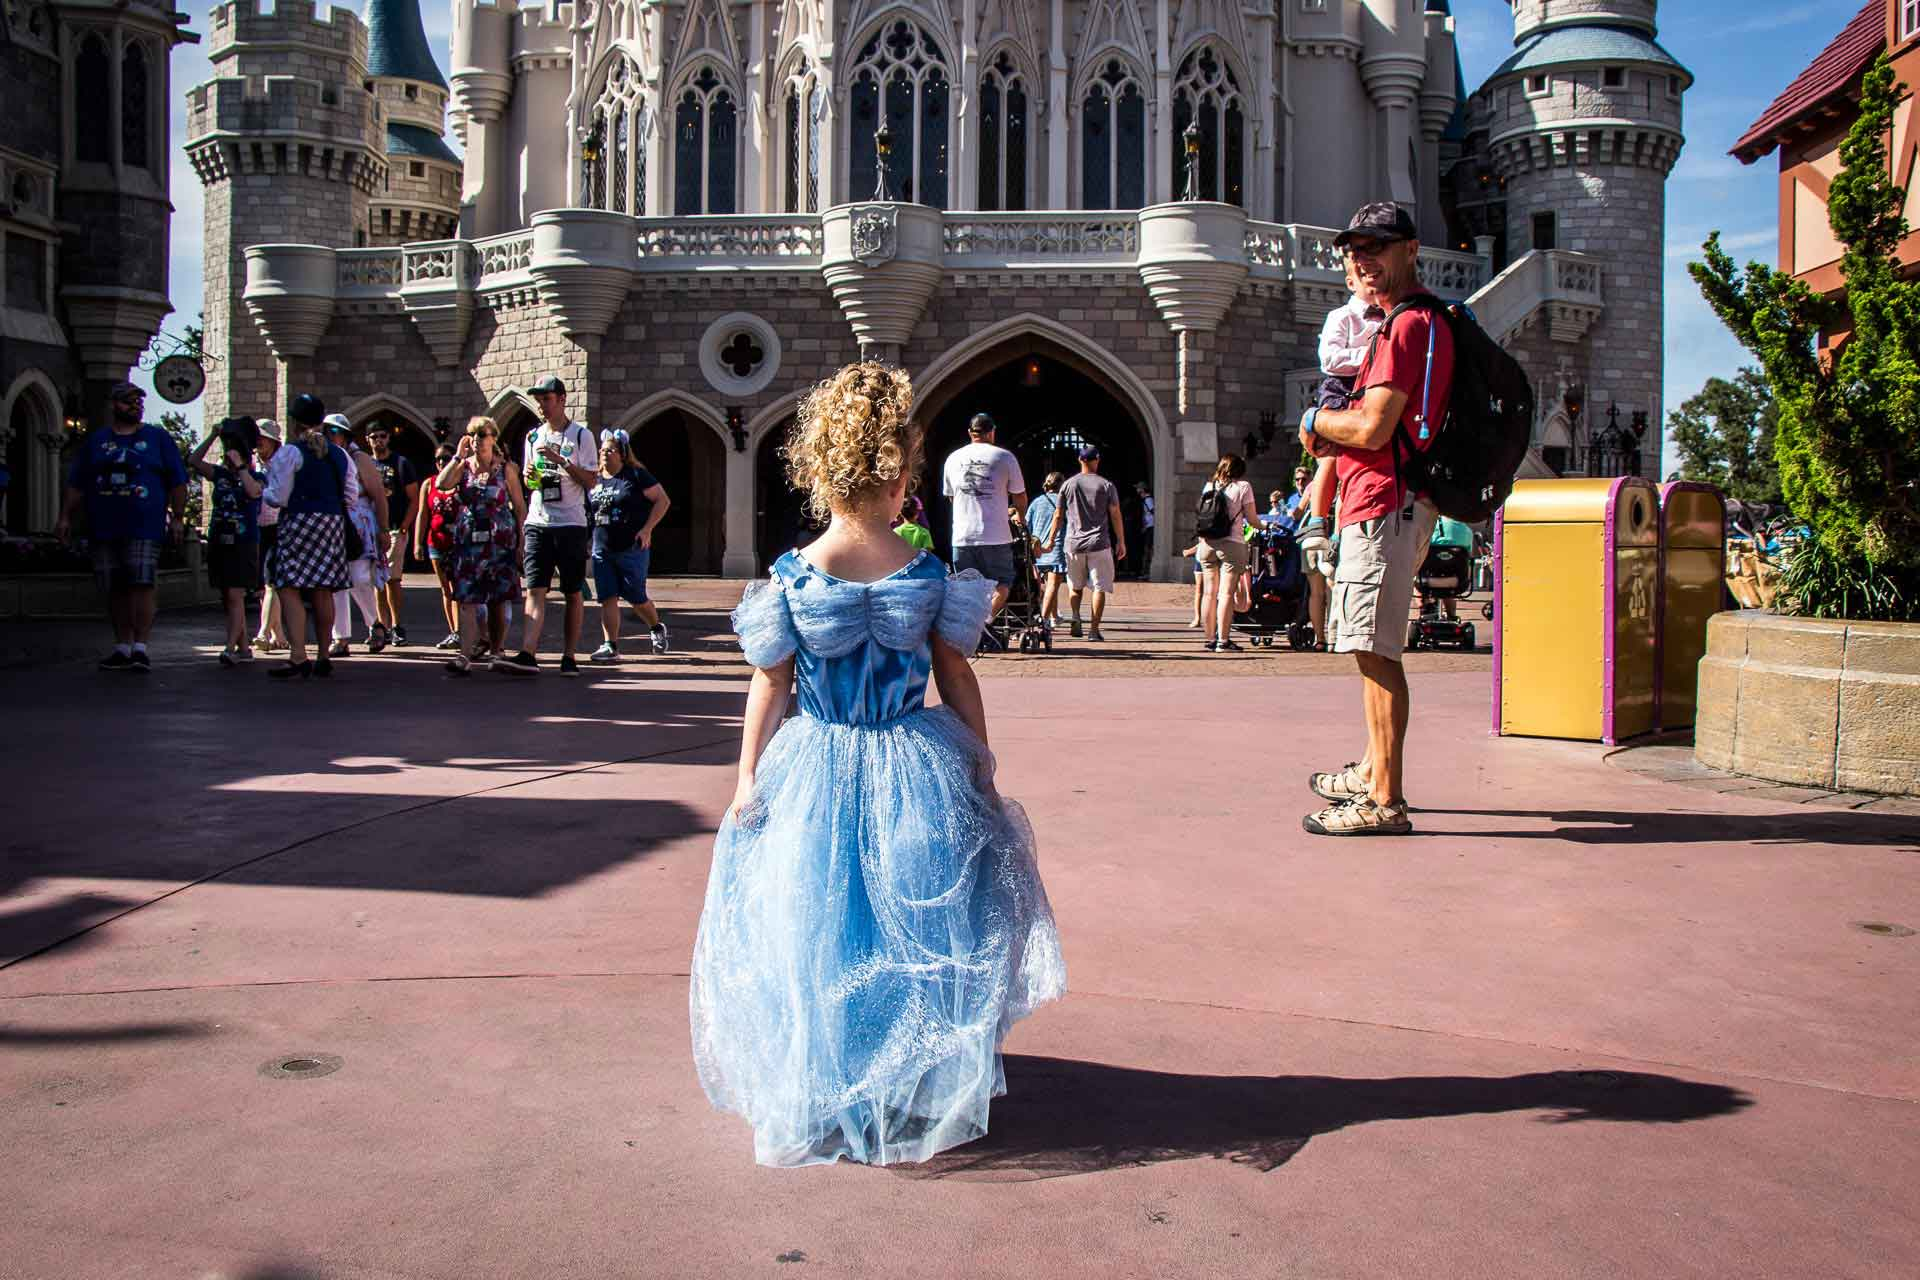 Family Can Travel - Things I Did't Know about Visiting Magic Kingdom Orlando - How to Get Reservation at Cinderella's Royal Table